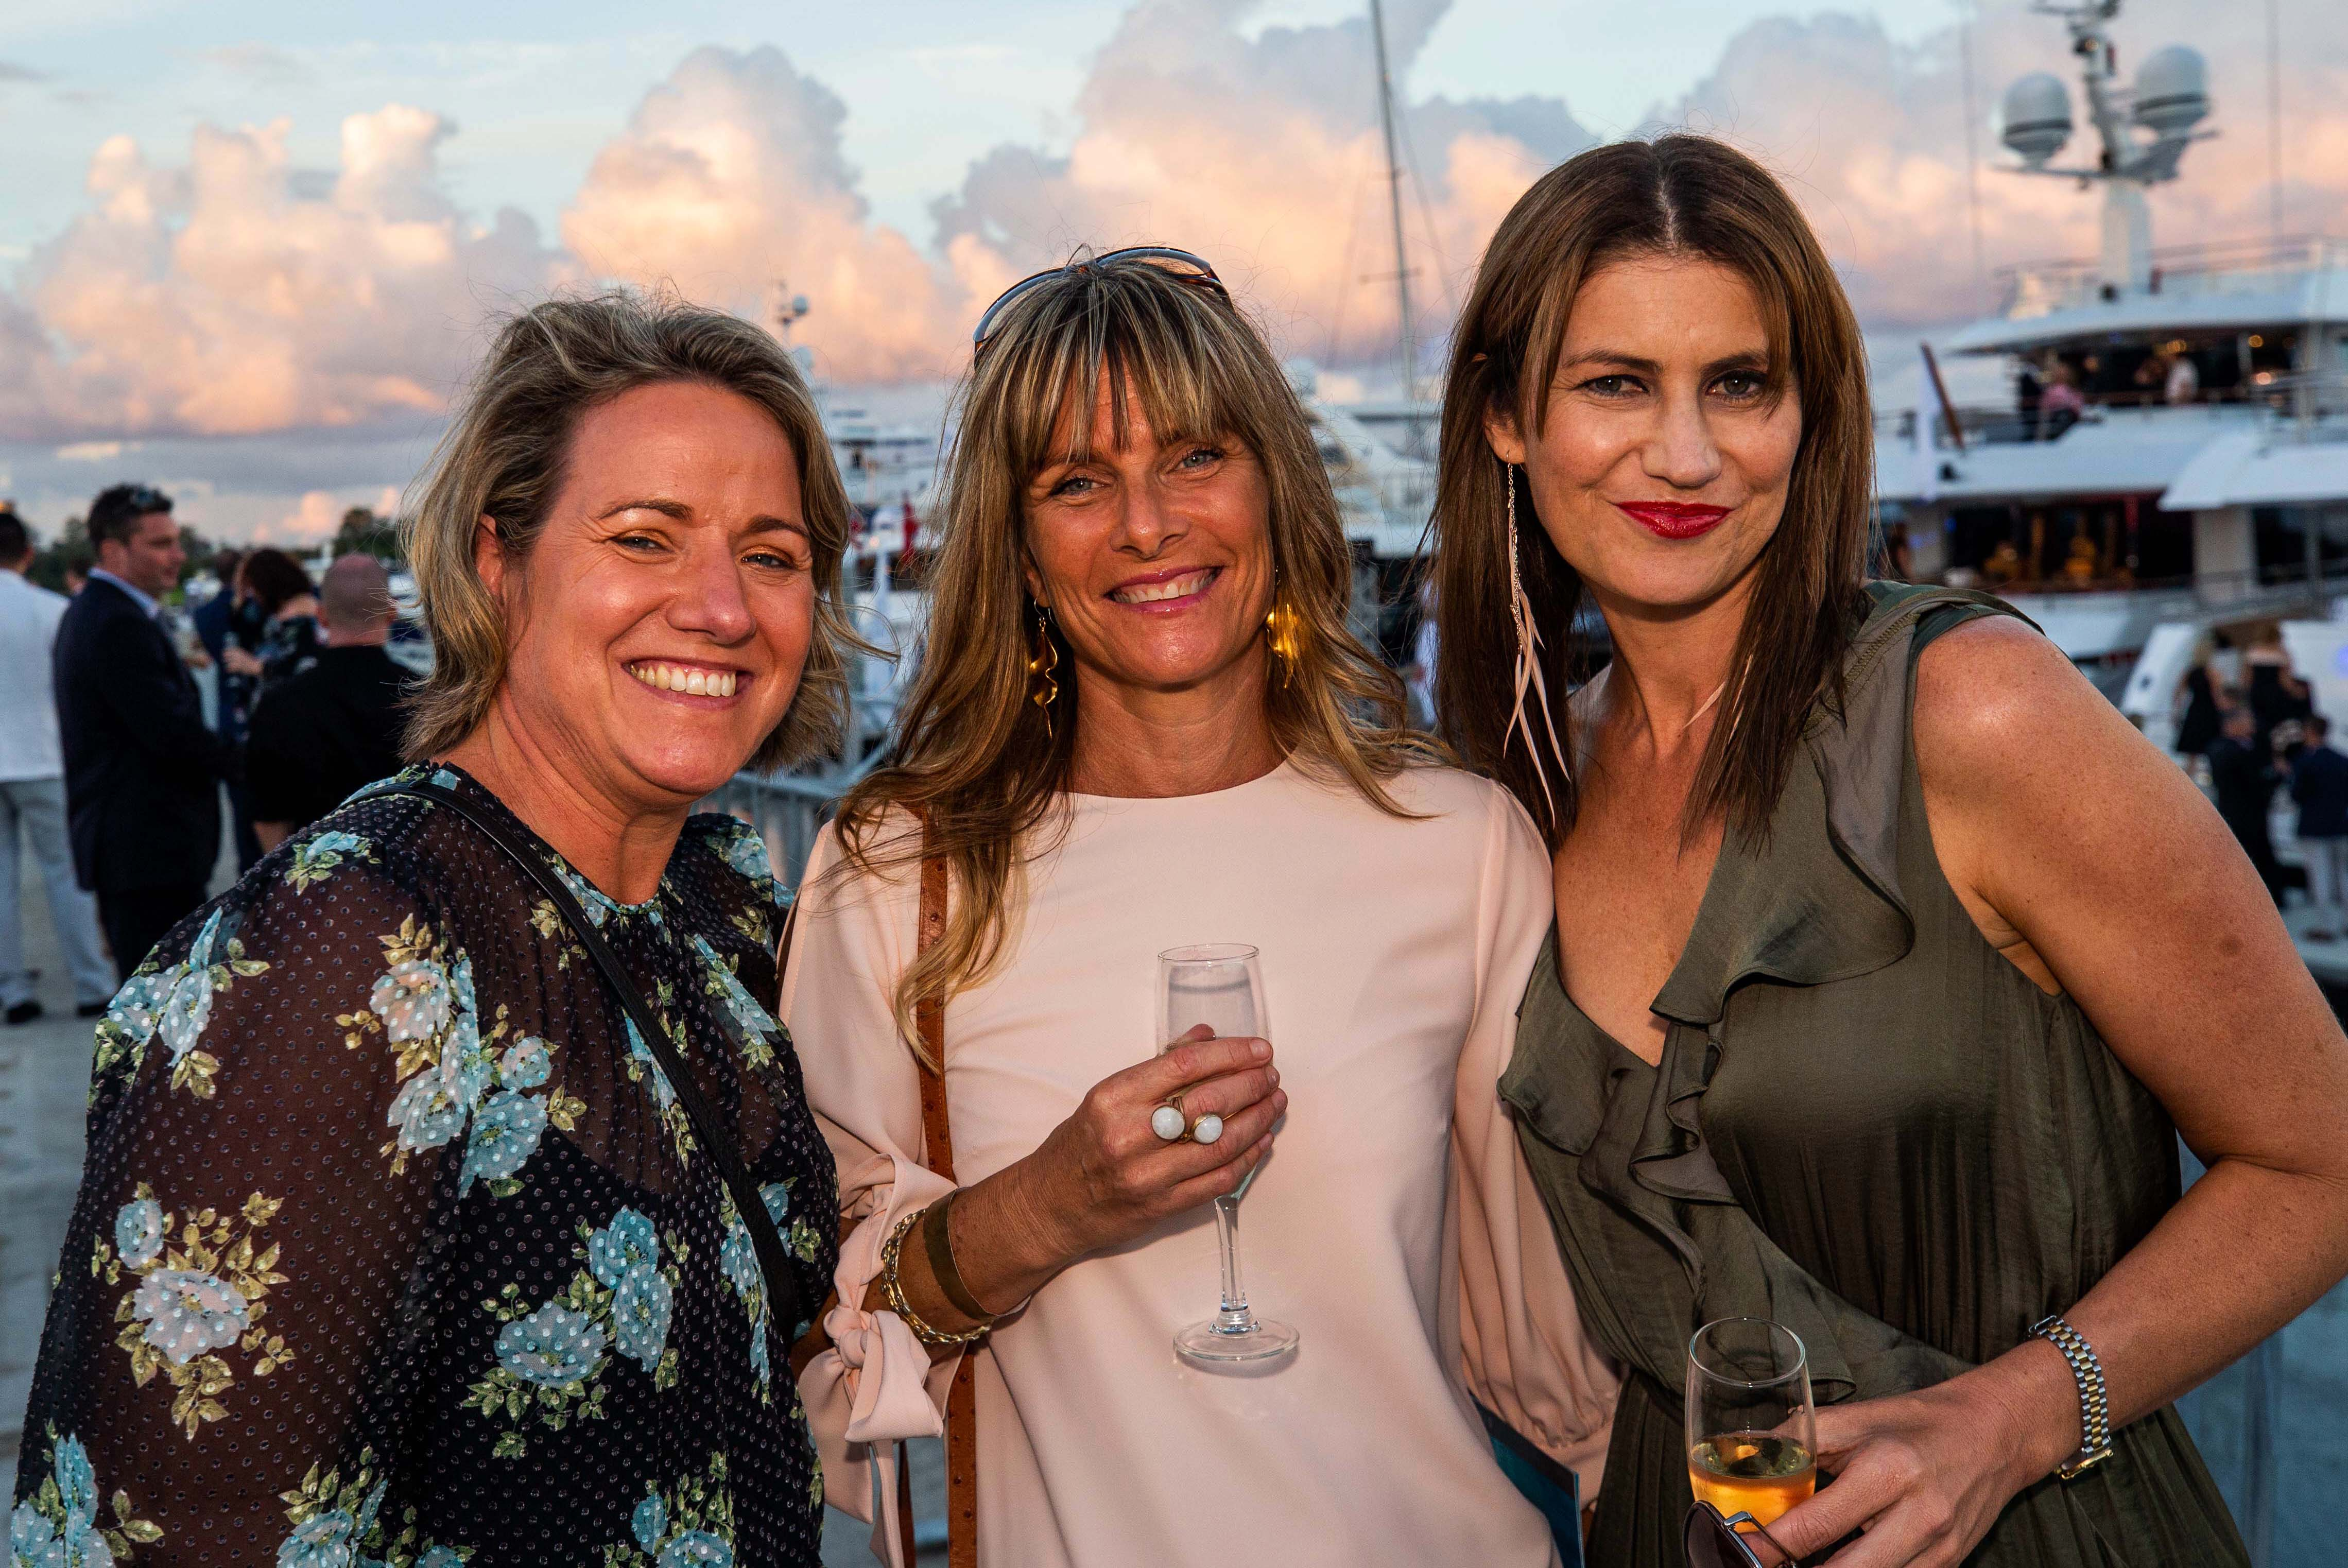 VIP event at the Australian Superyacht Rendezvous